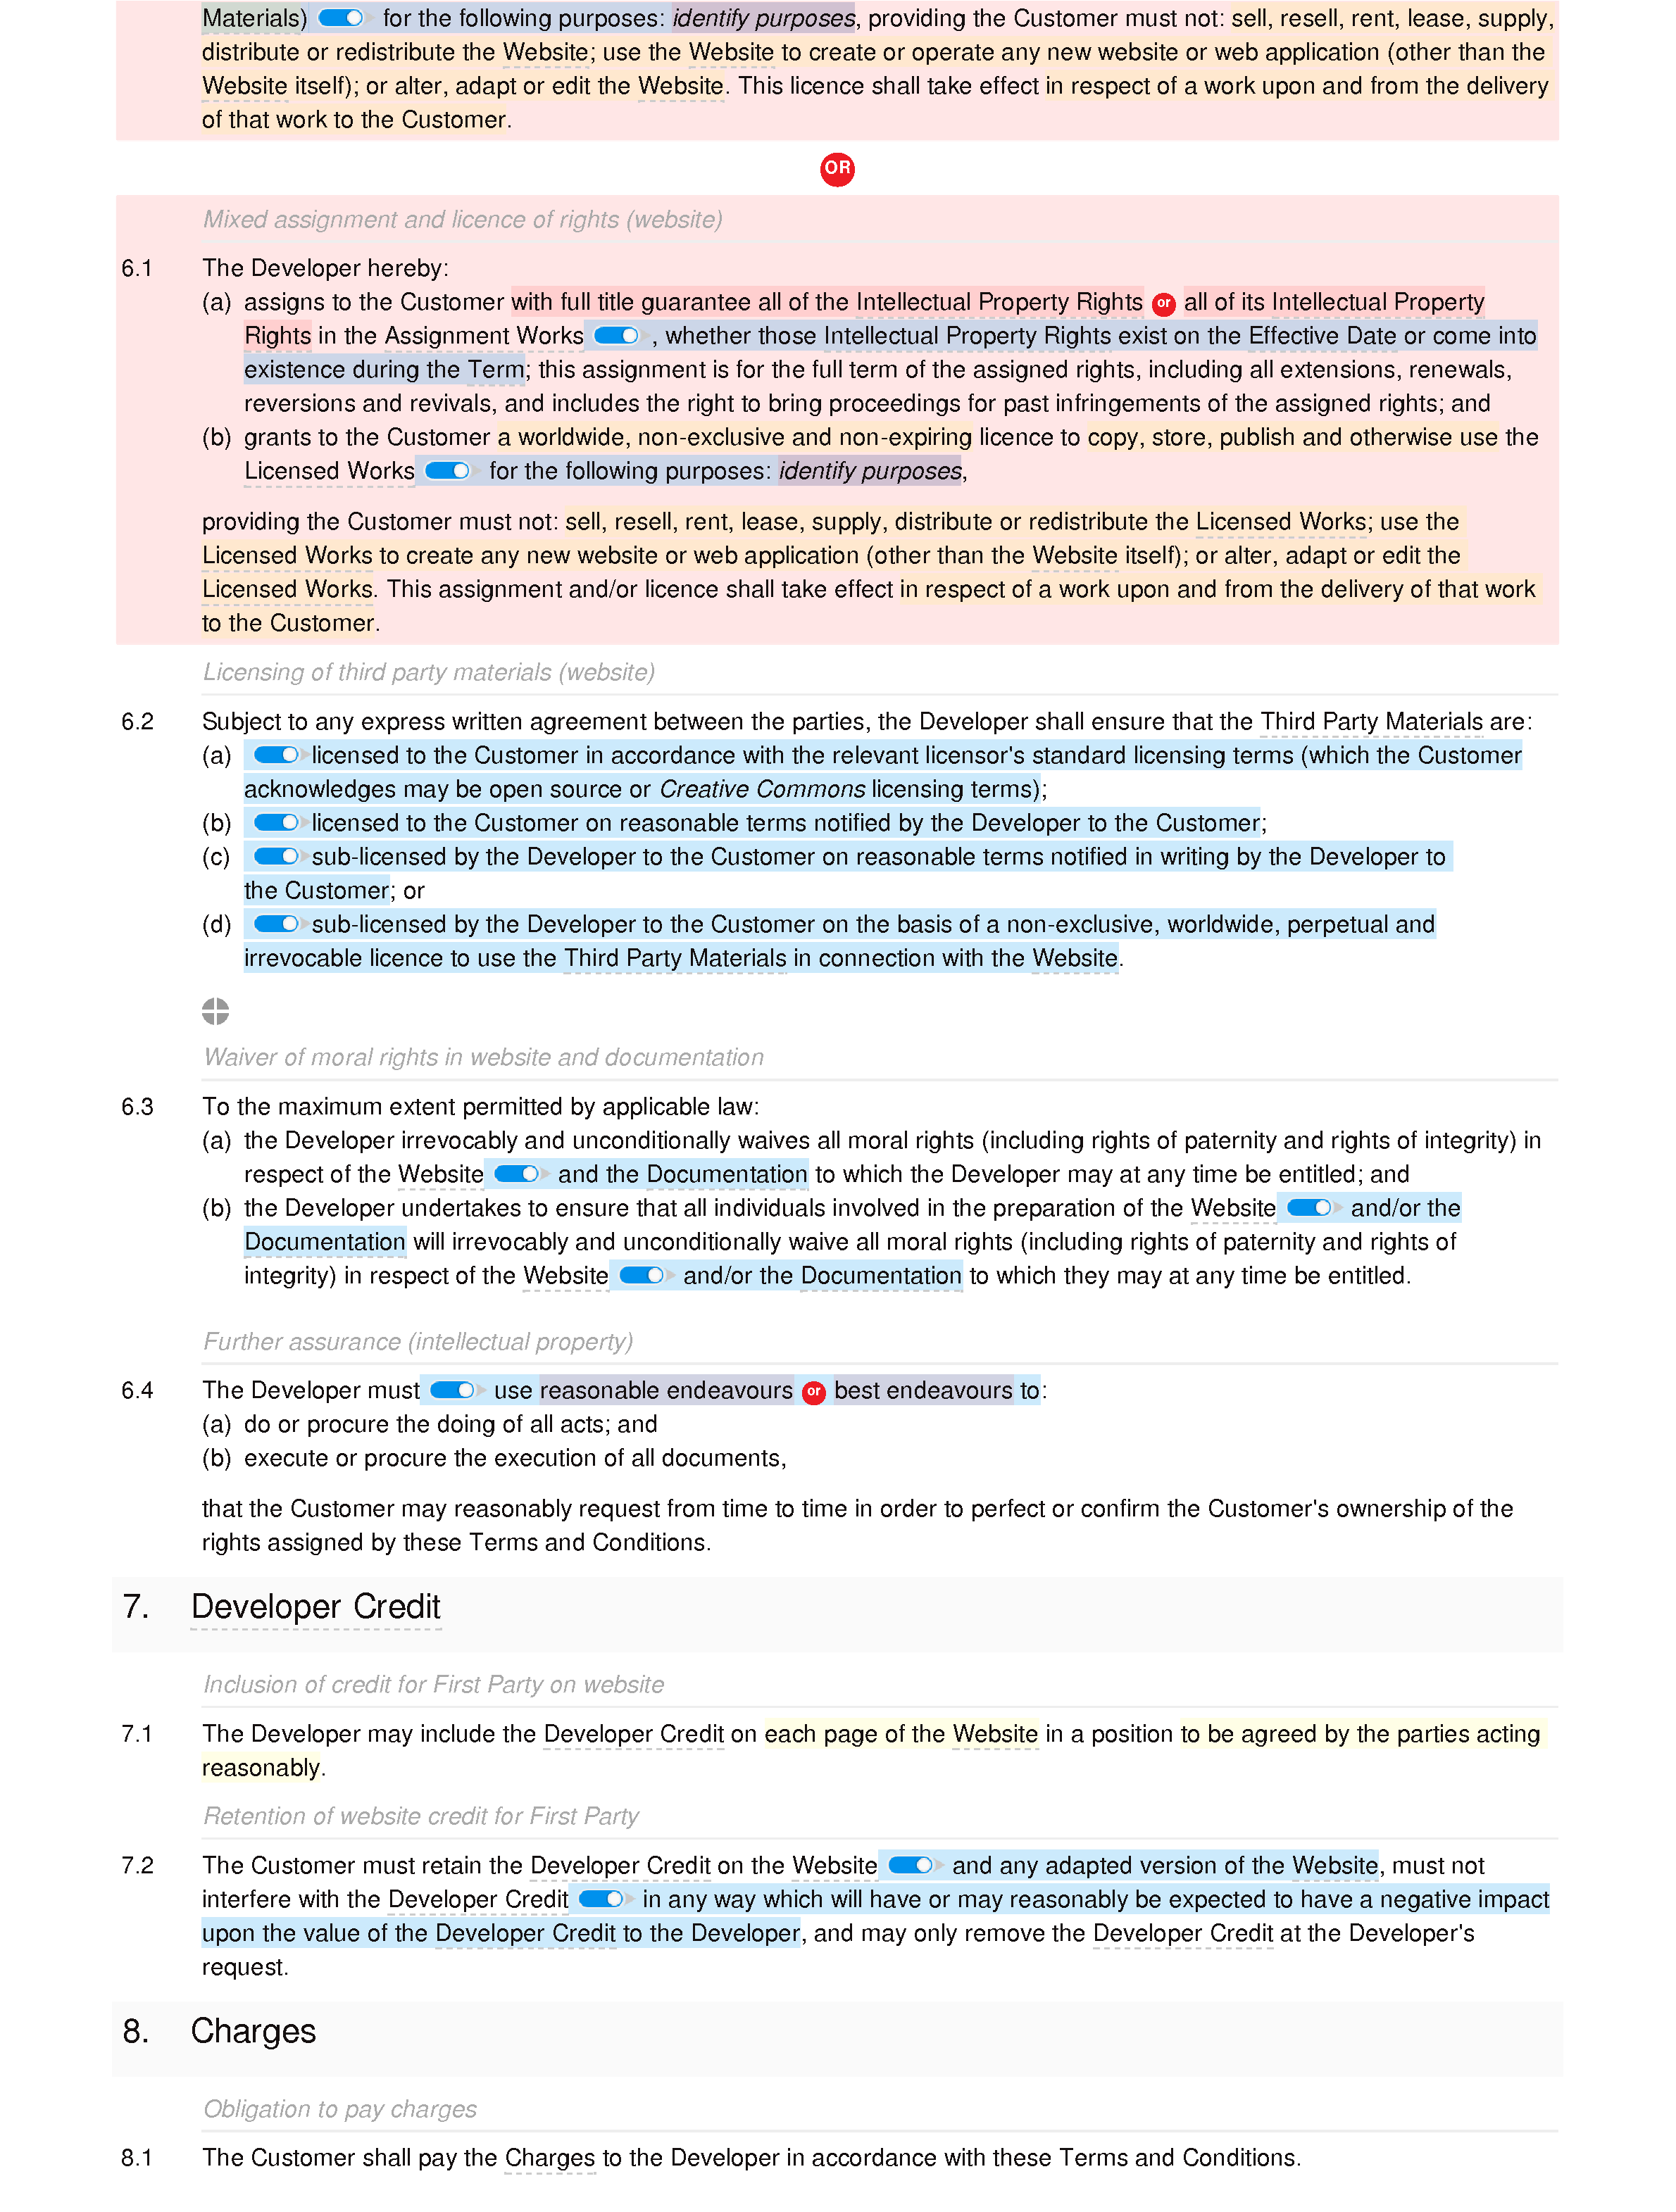 Web design and development terms and conditions (basic) document editor preview